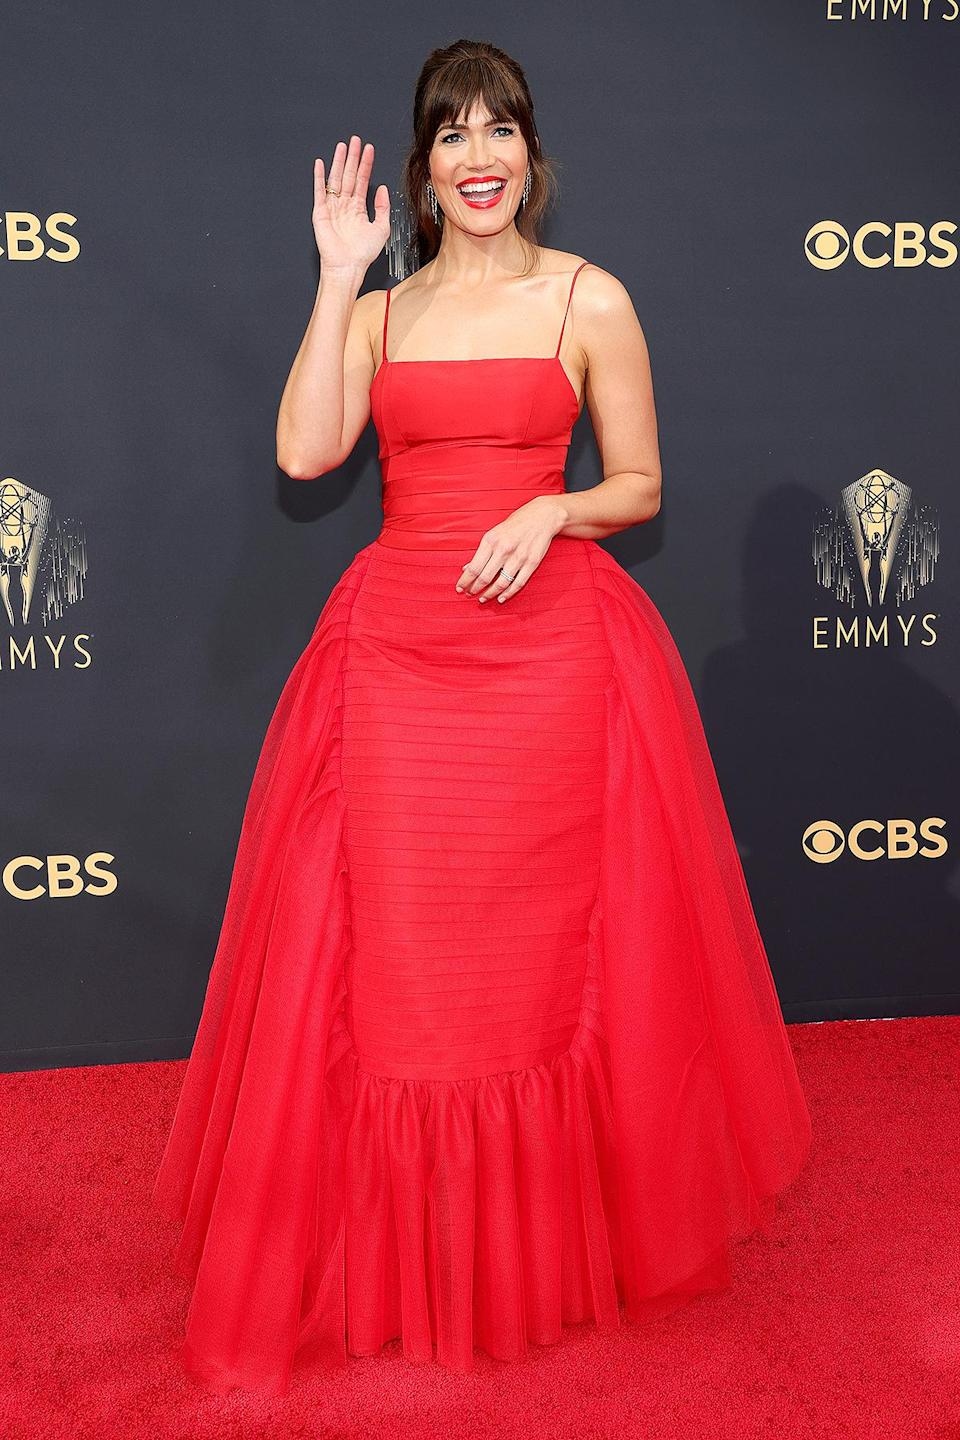 <p>wears a bright red spaghetti-strap gown with ruffled tulle skirt.</p>